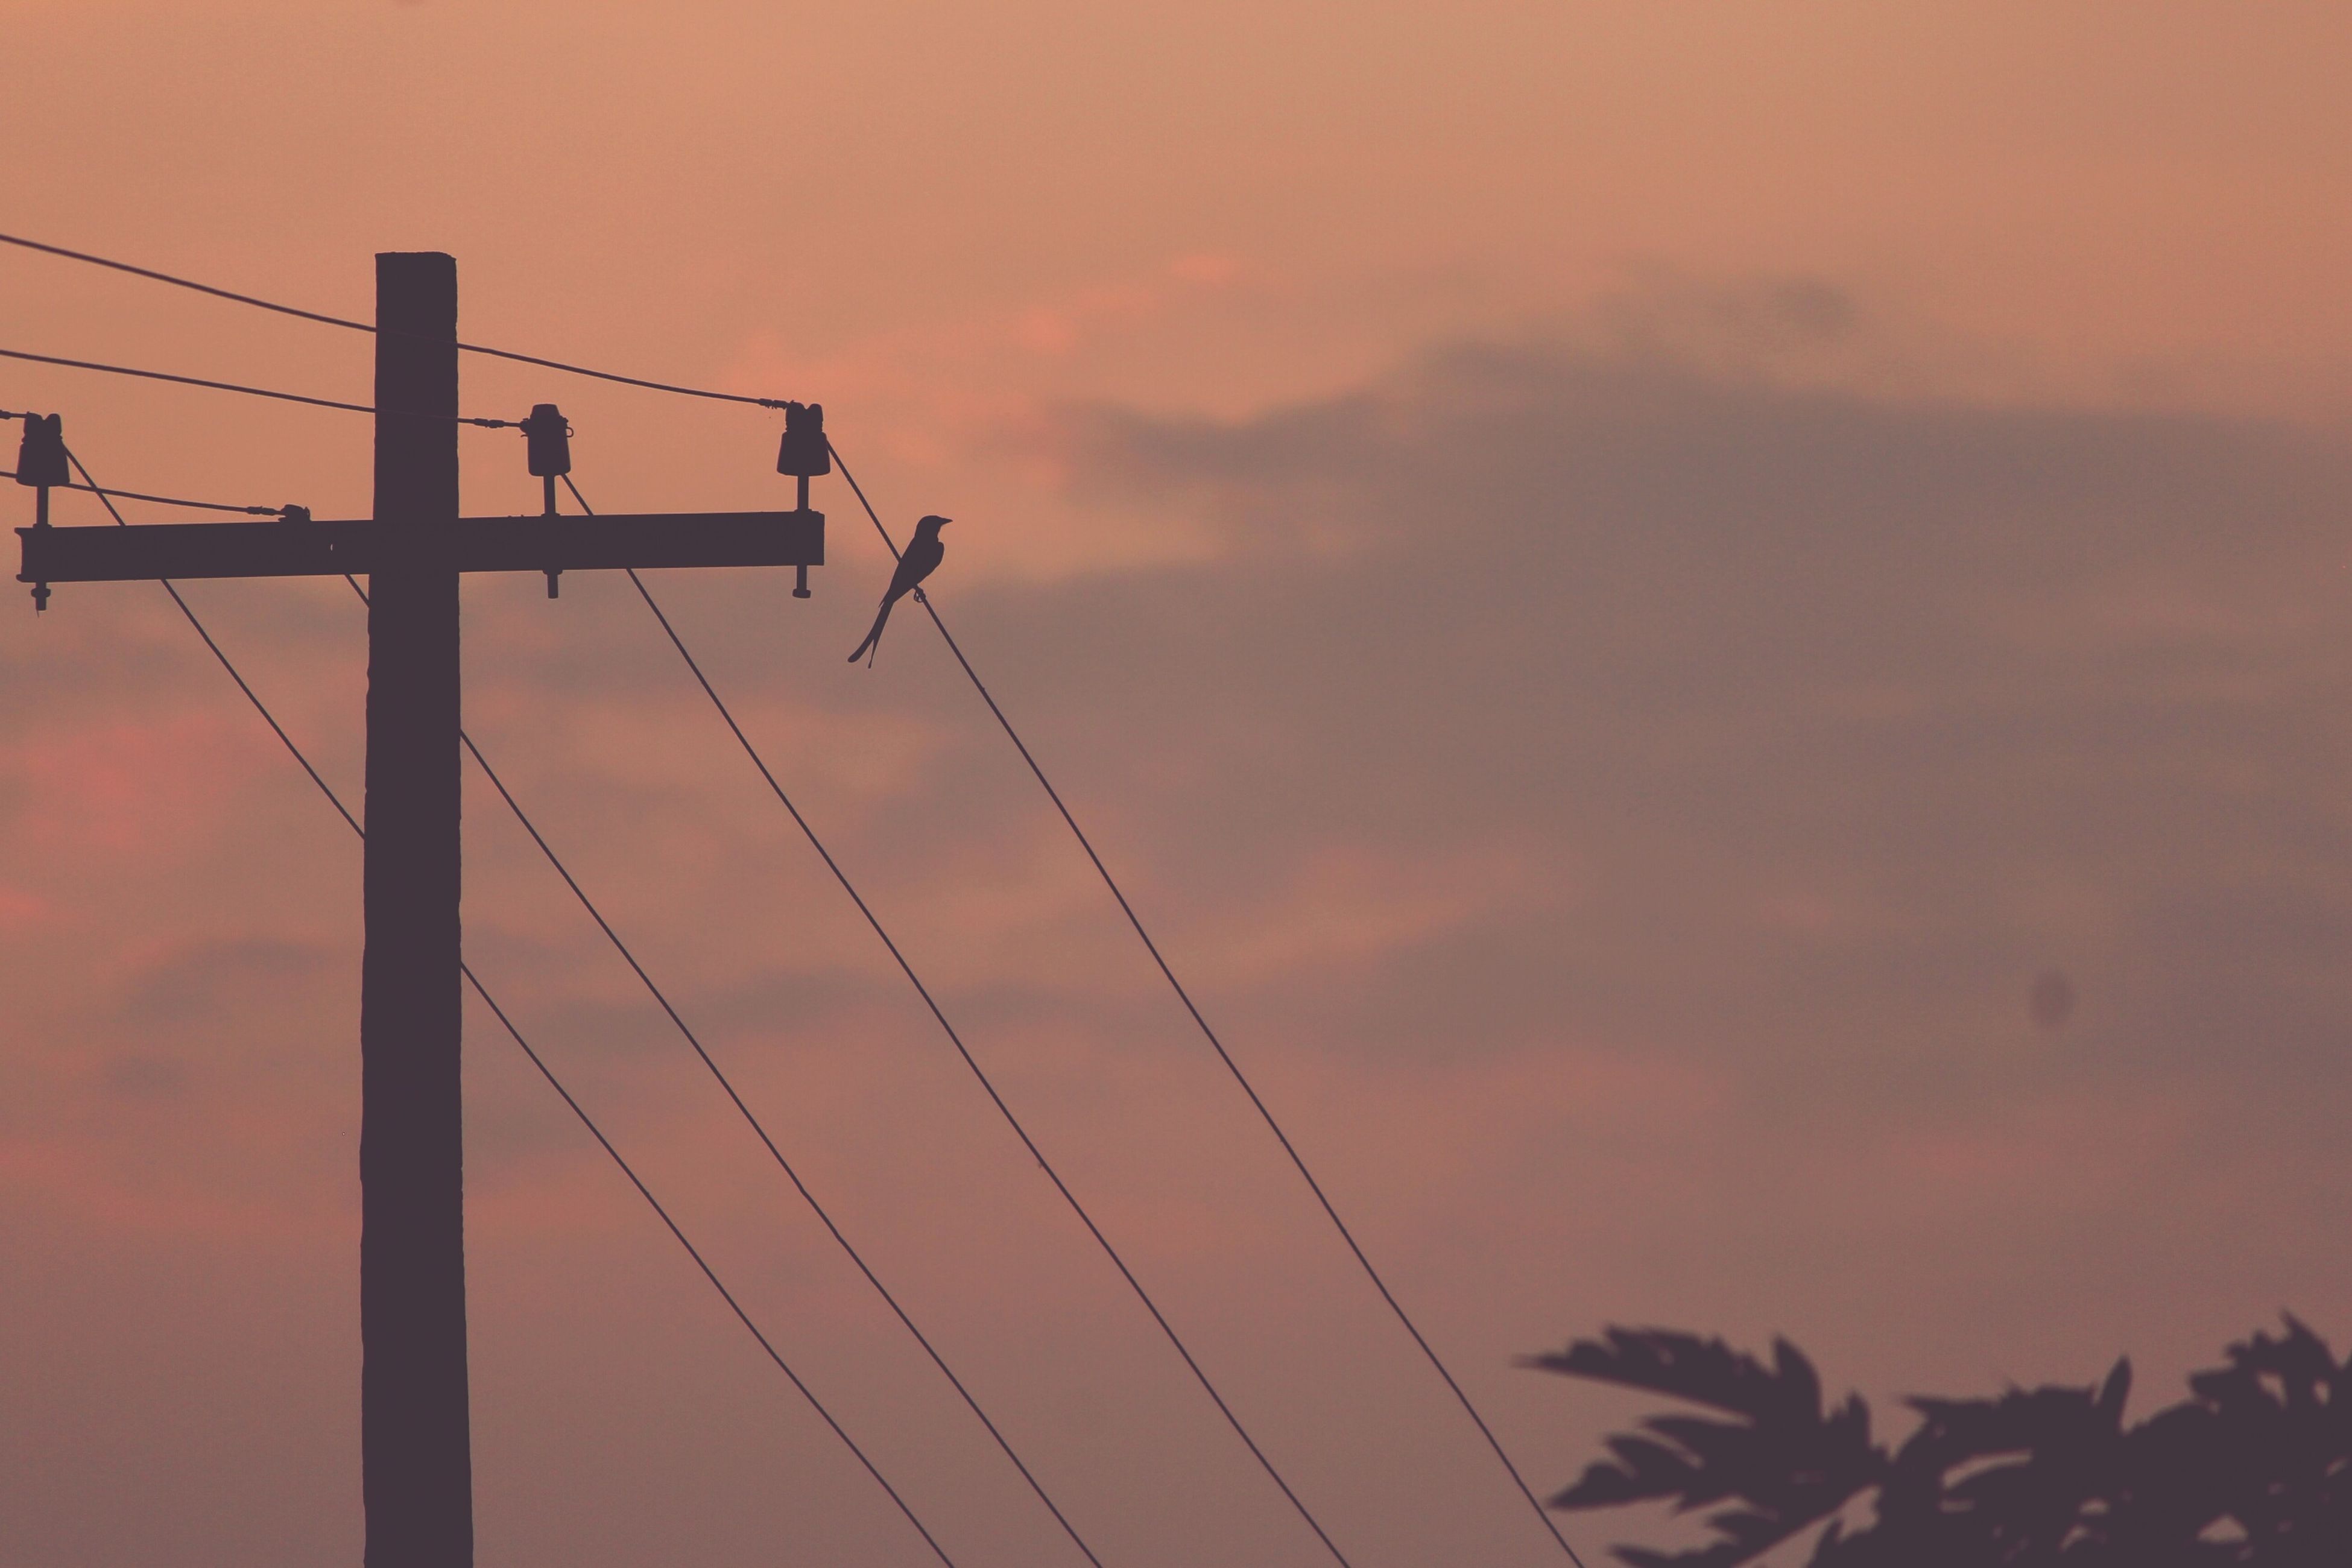 sunset, low angle view, power line, silhouette, sky, electricity pylon, connection, orange color, power supply, electricity, cable, fuel and power generation, nature, beauty in nature, tranquility, cloud - sky, technology, outdoors, scenics, dusk